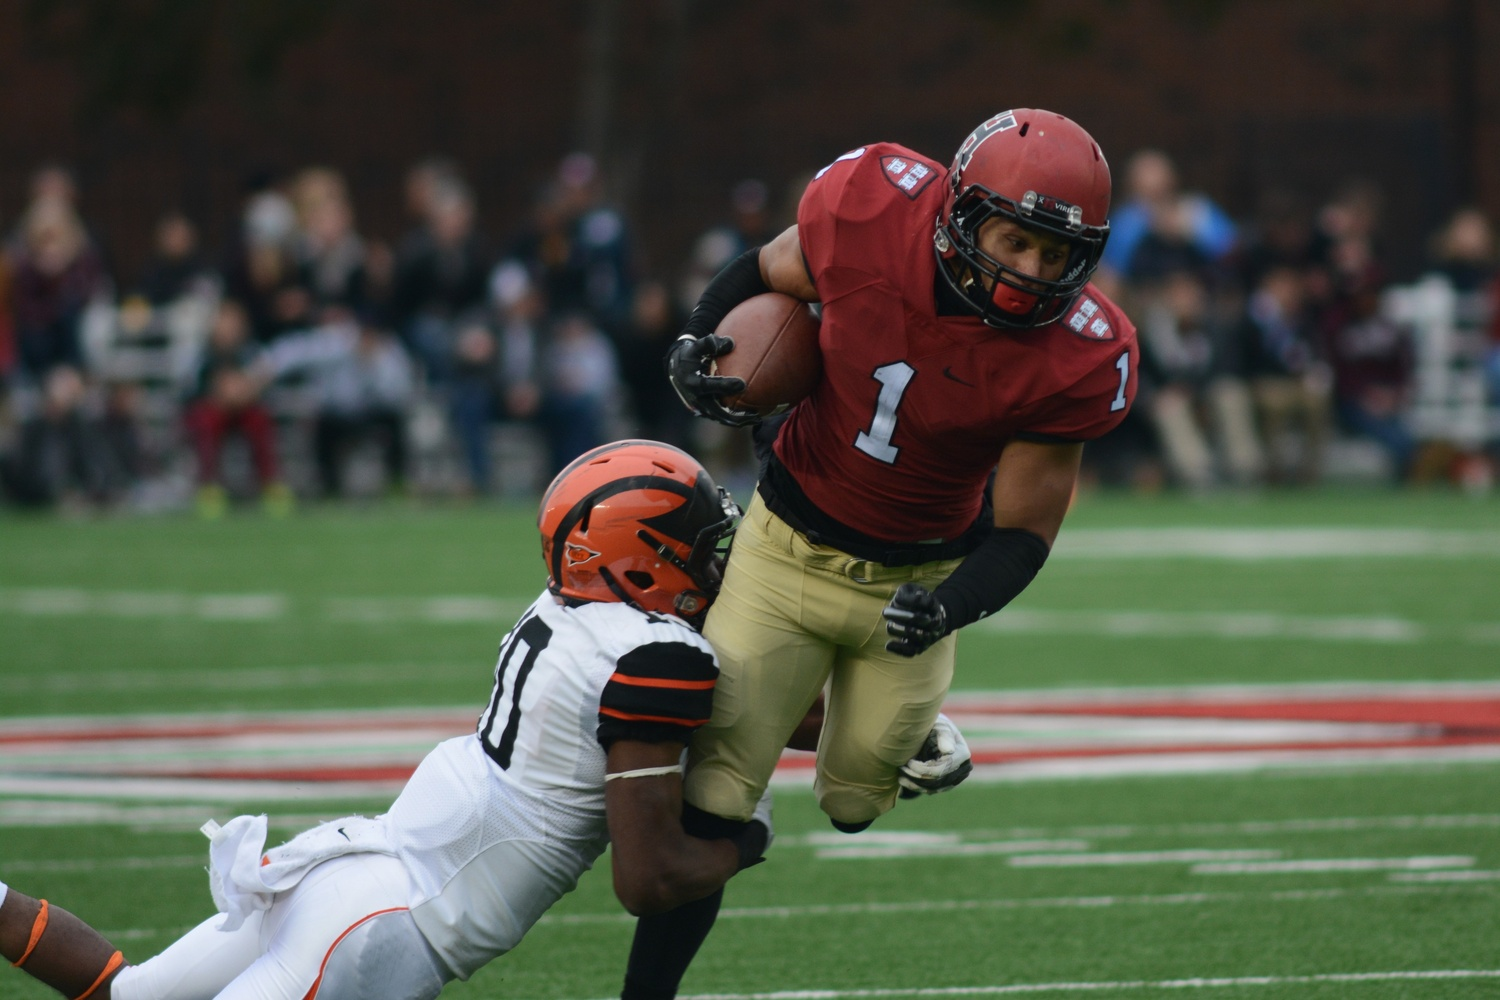 Senior wide receiver Andrew Fischer amassed 190 yards on 10 catches, including one for a touchdown. Harvard throttled Princeton at home on Saturday, 42-7.